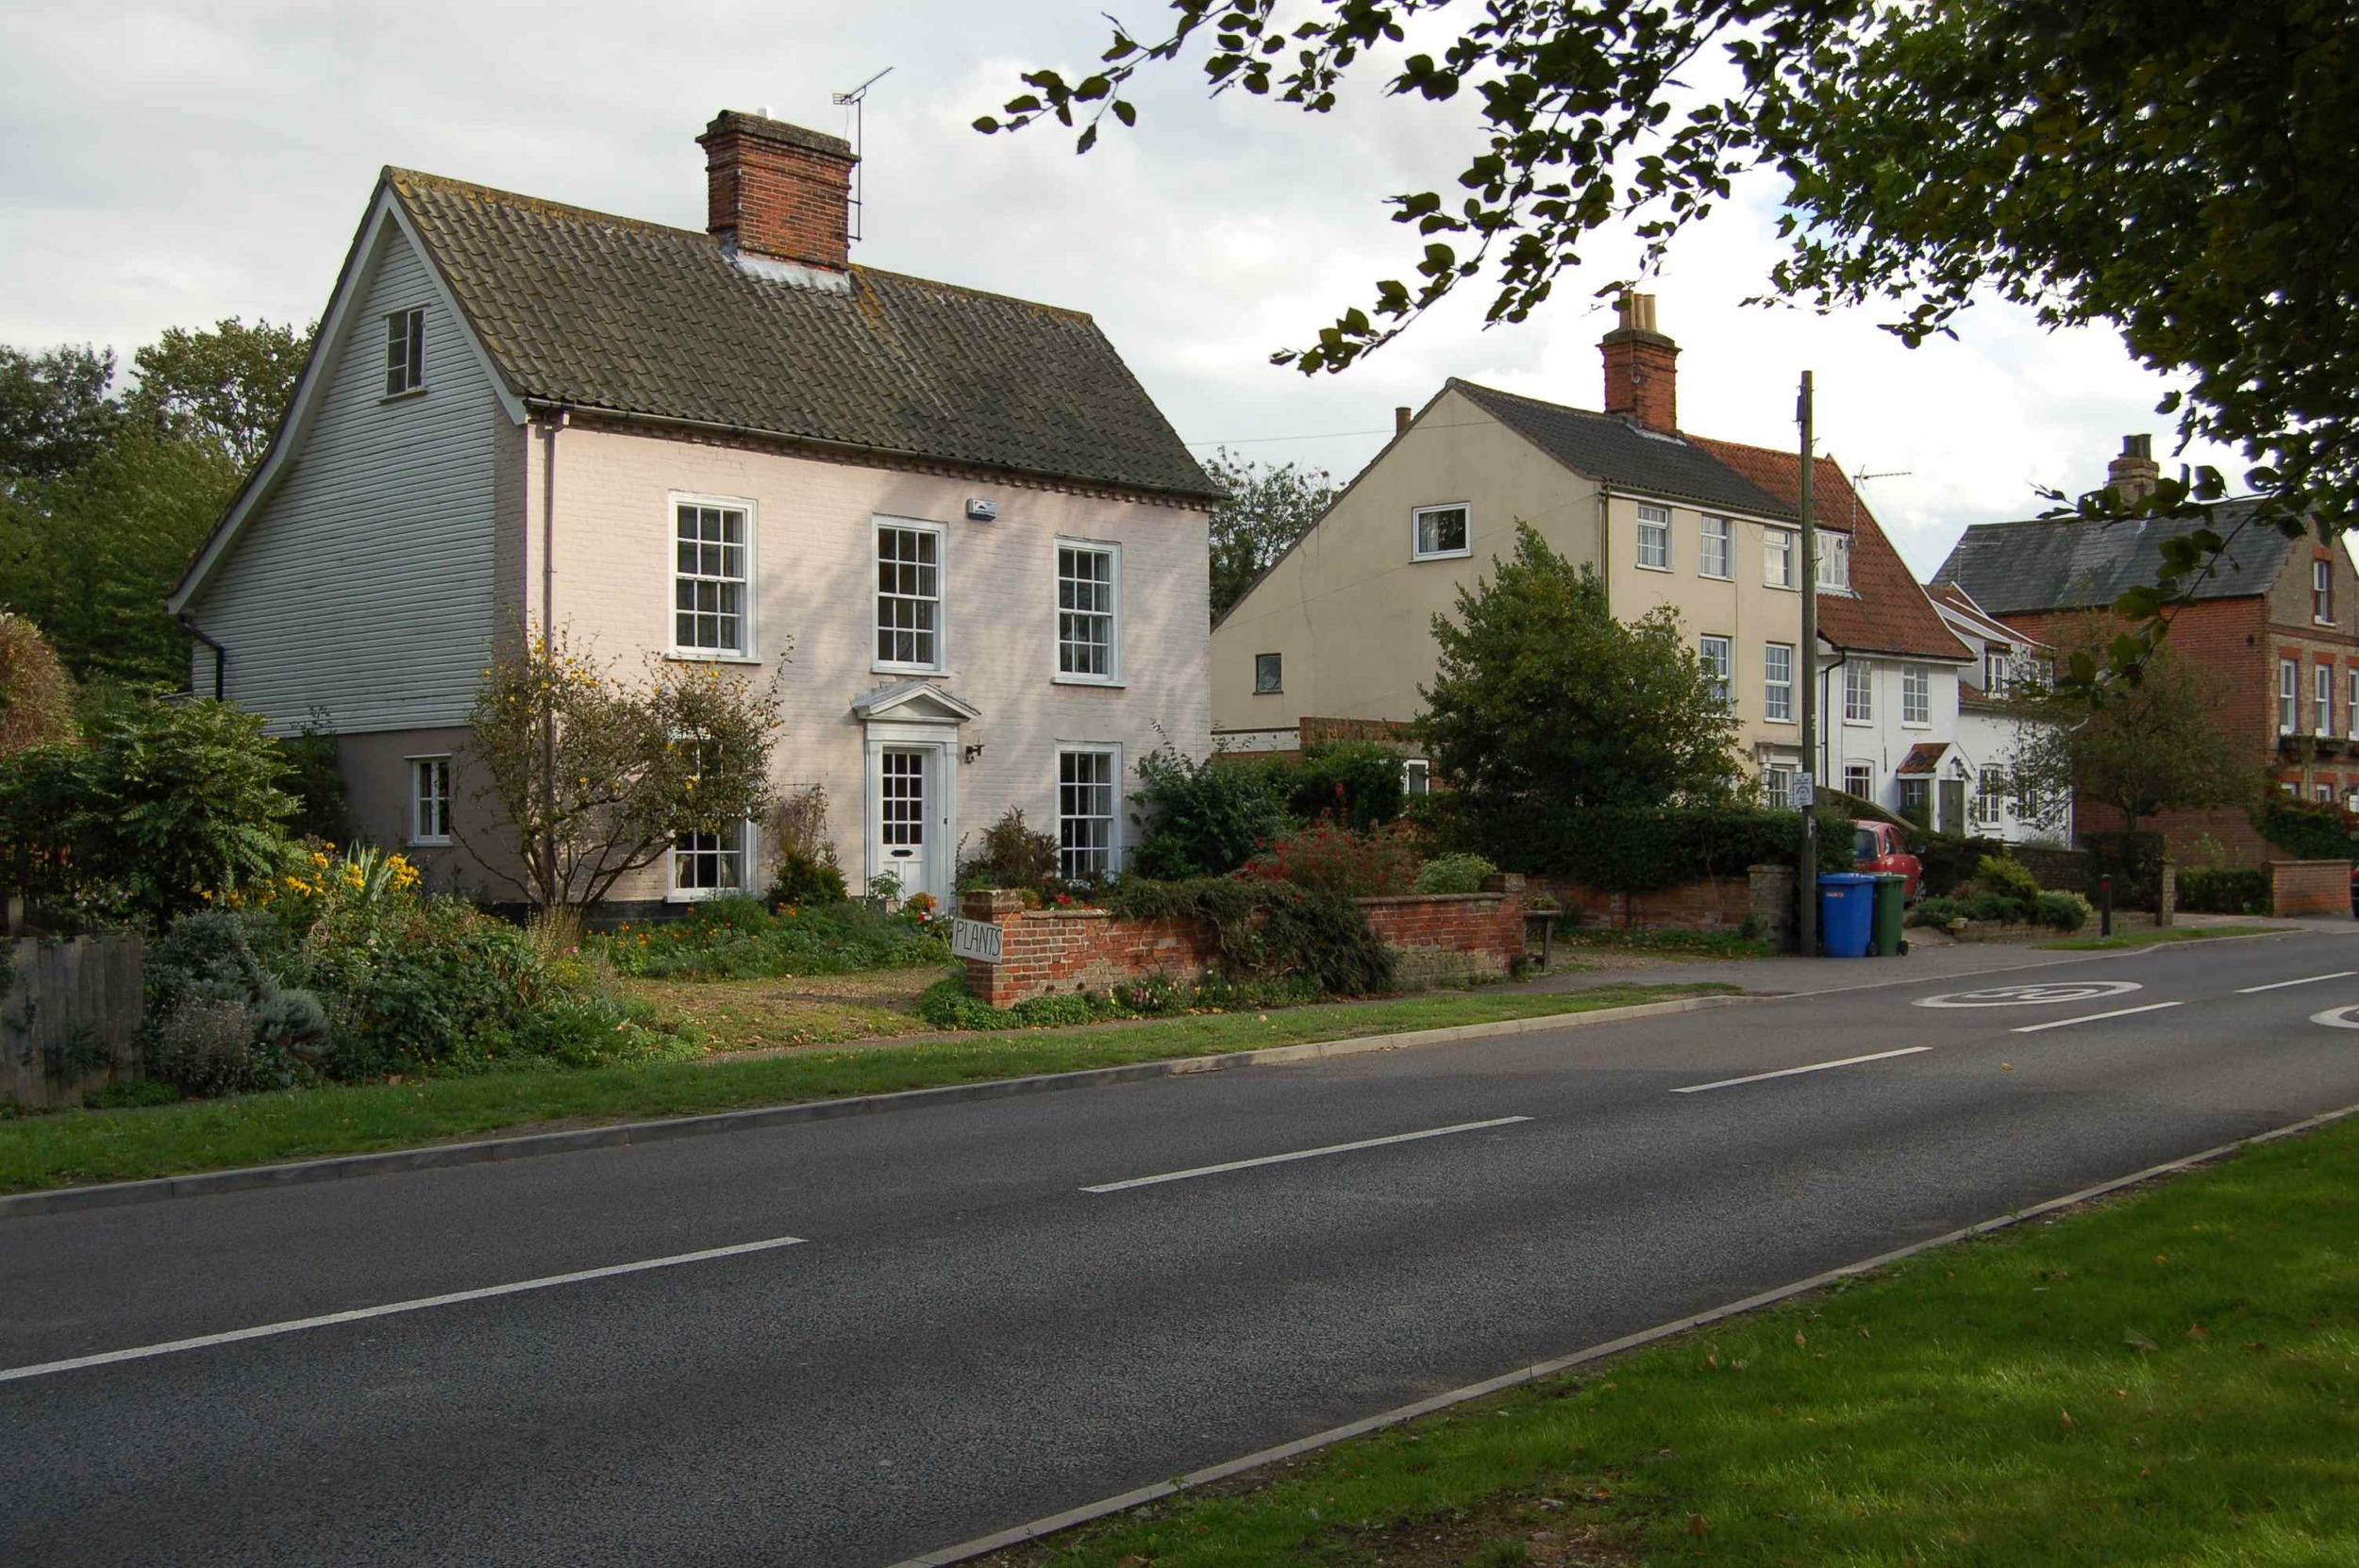 Wrentham, Suffolk